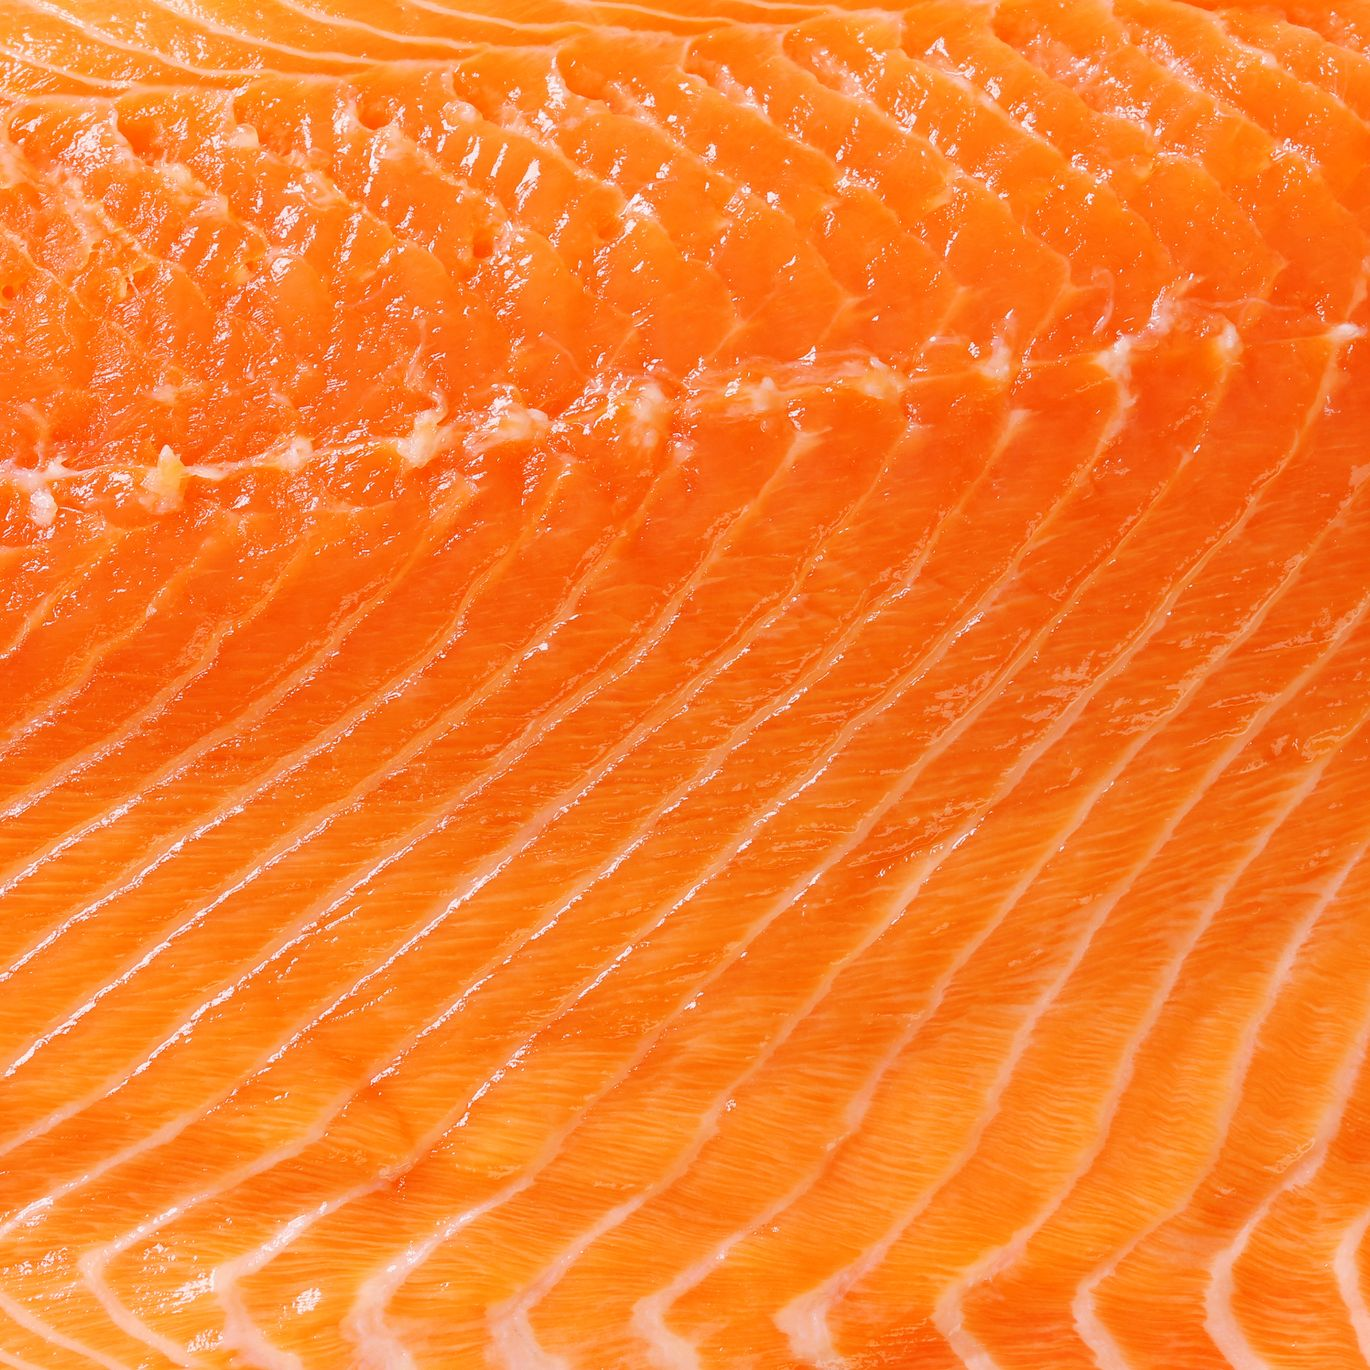 Raw salmon background